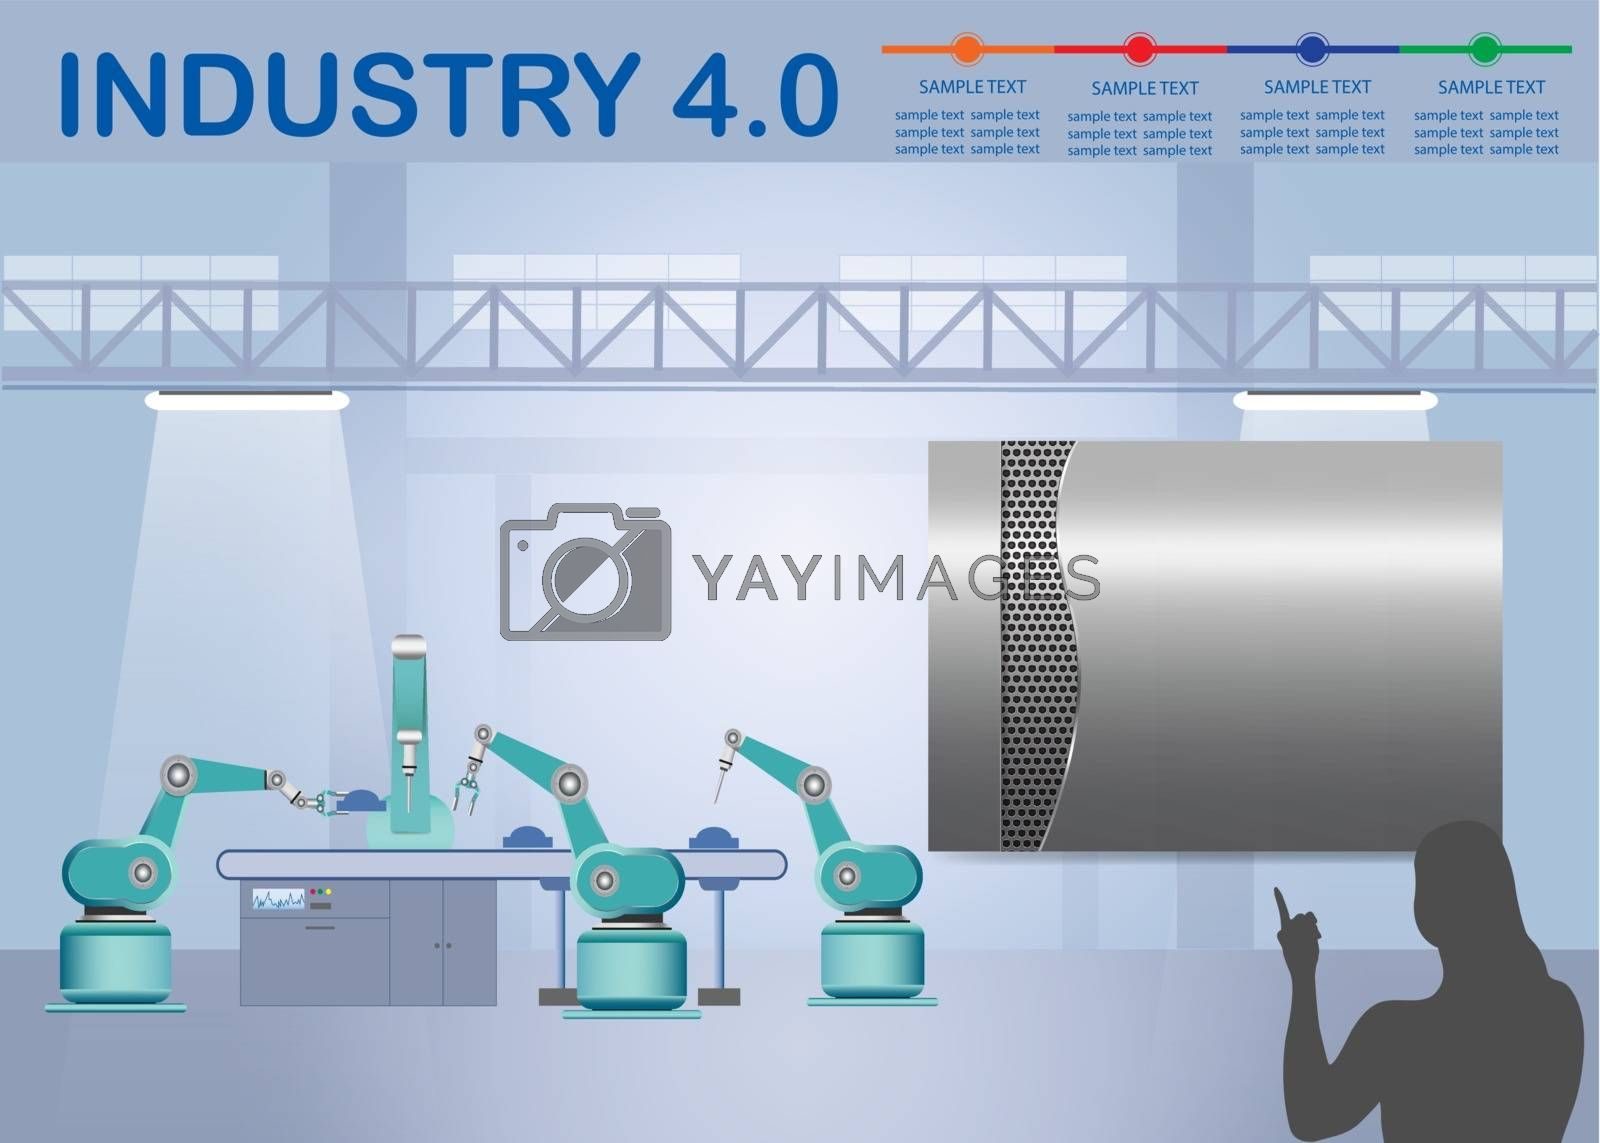 Royalty free image of Industry 4.0 Smart factory infographic with metal label by Frank11